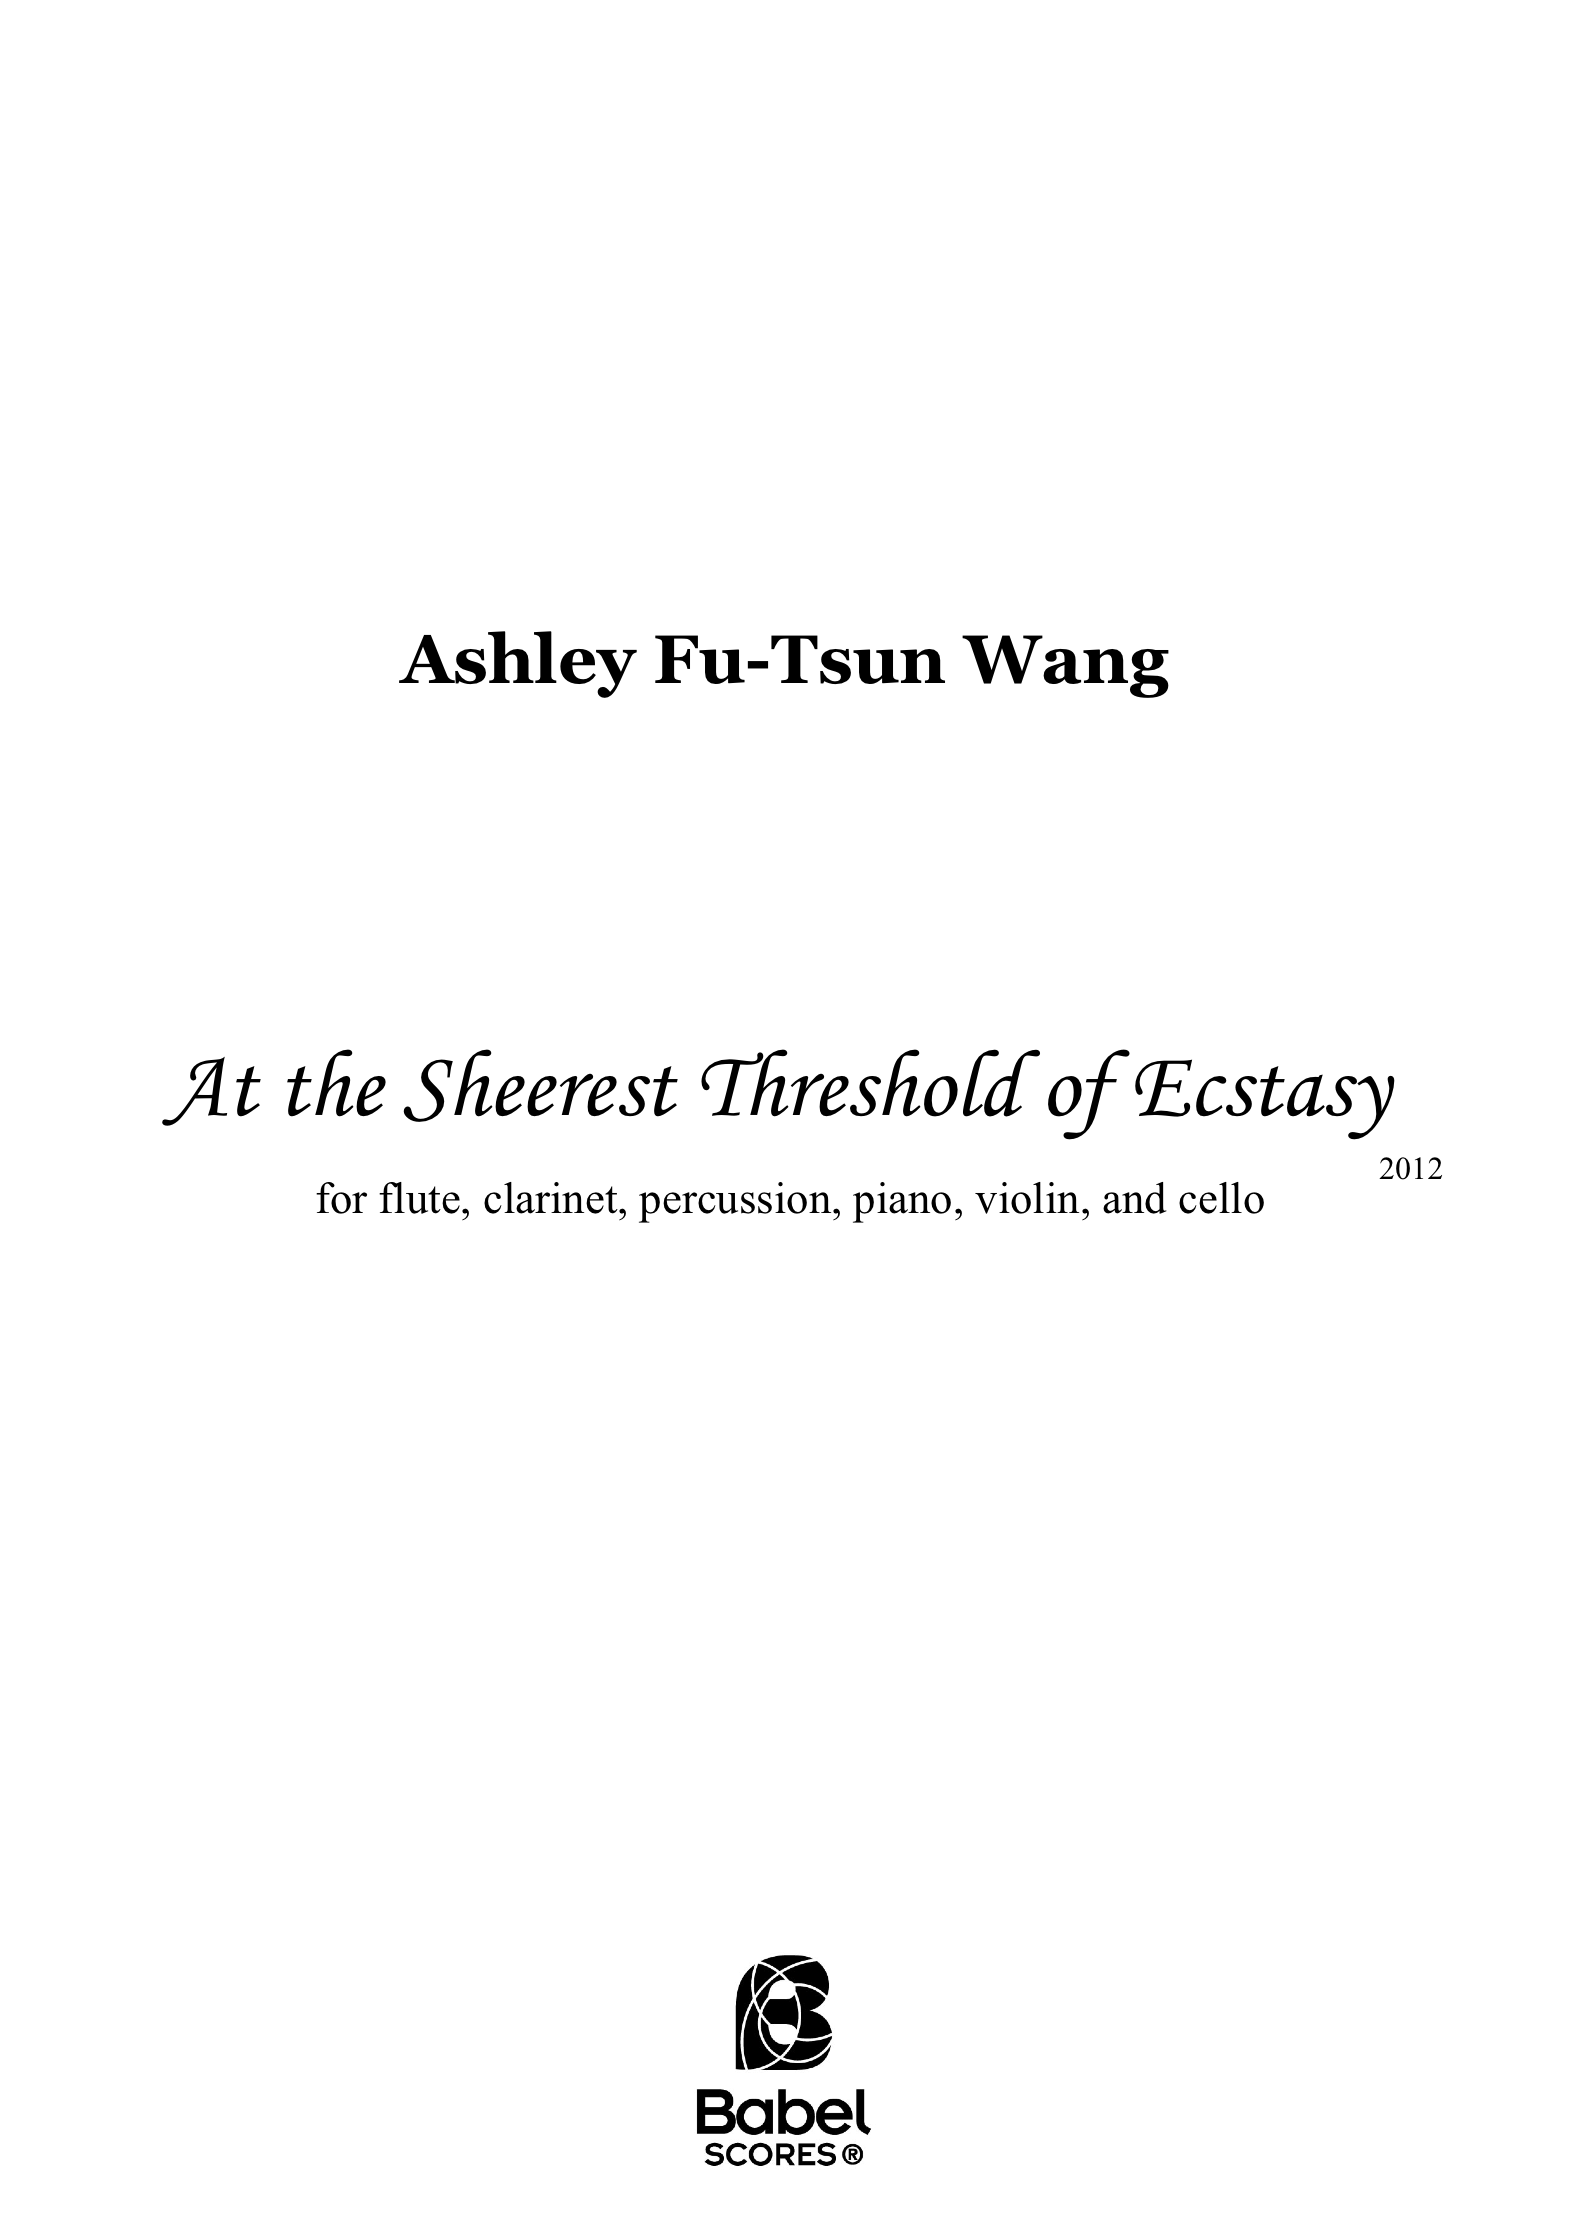 At the Sheerest Threshold of Ecstasy Ashley Fu Tsun Wang A4 z